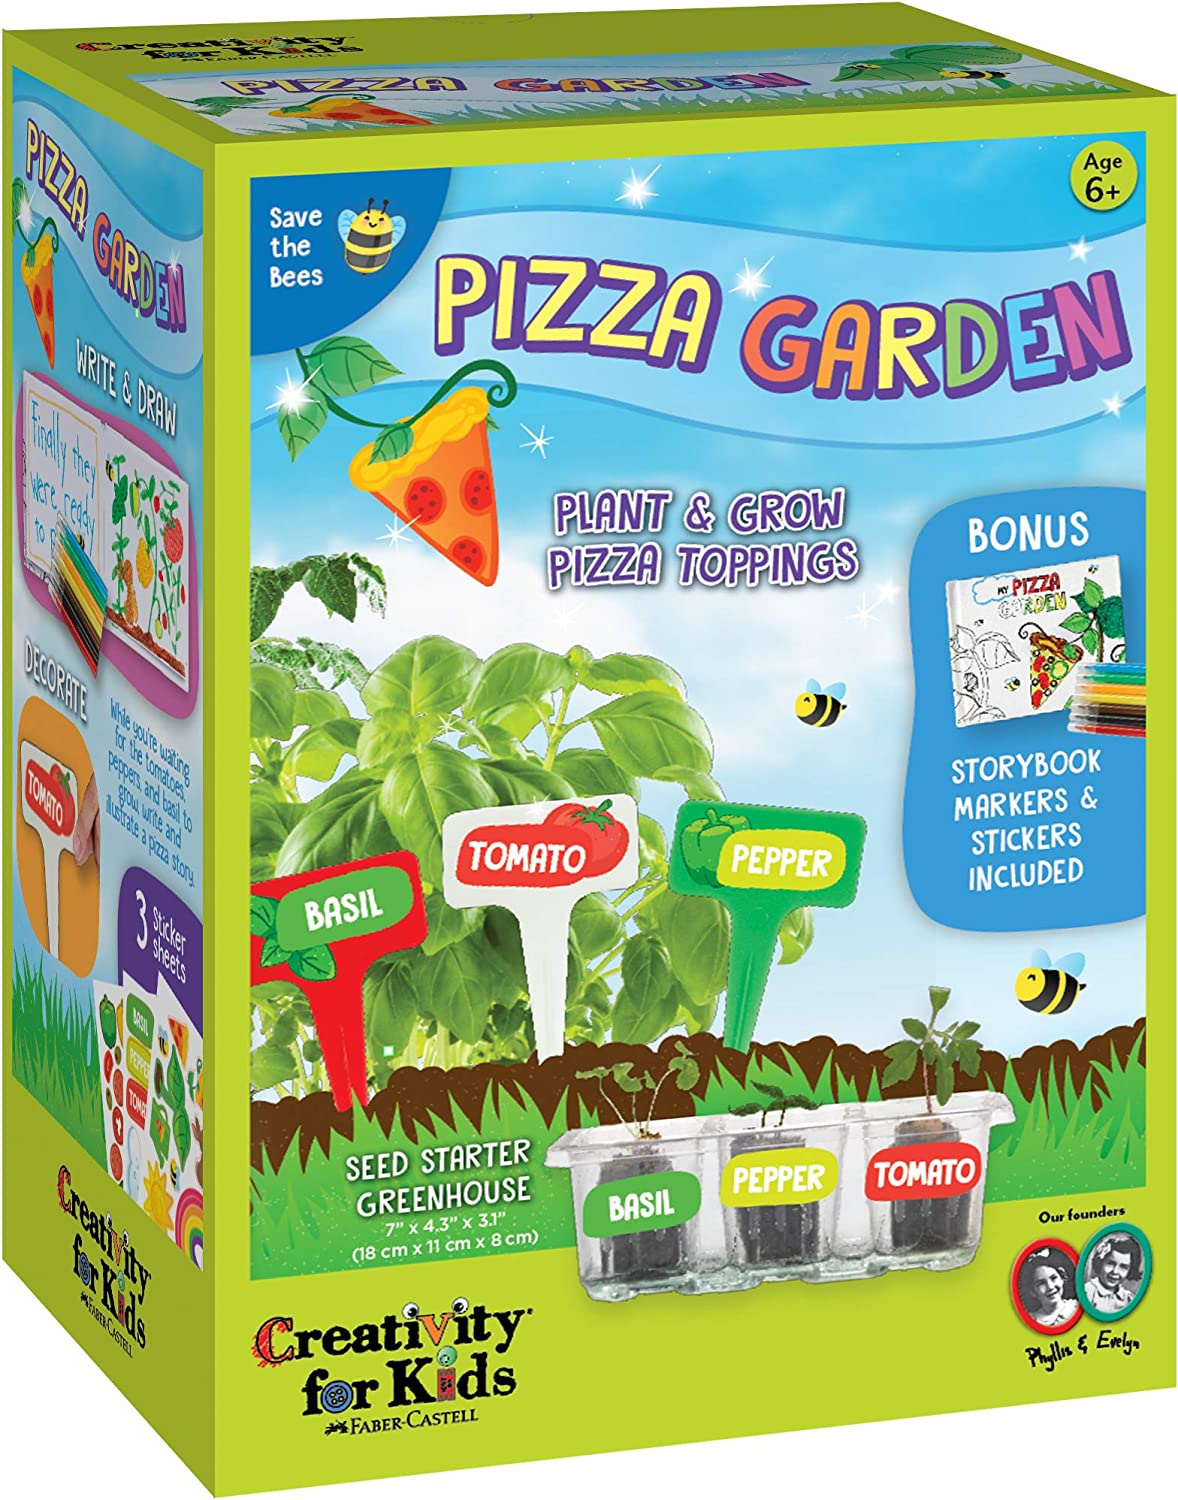 Creativity for Kids Pizza Garden Kit - Grow Your Own Pizza Vegetable and Herbs - Gardening Kit for Kids